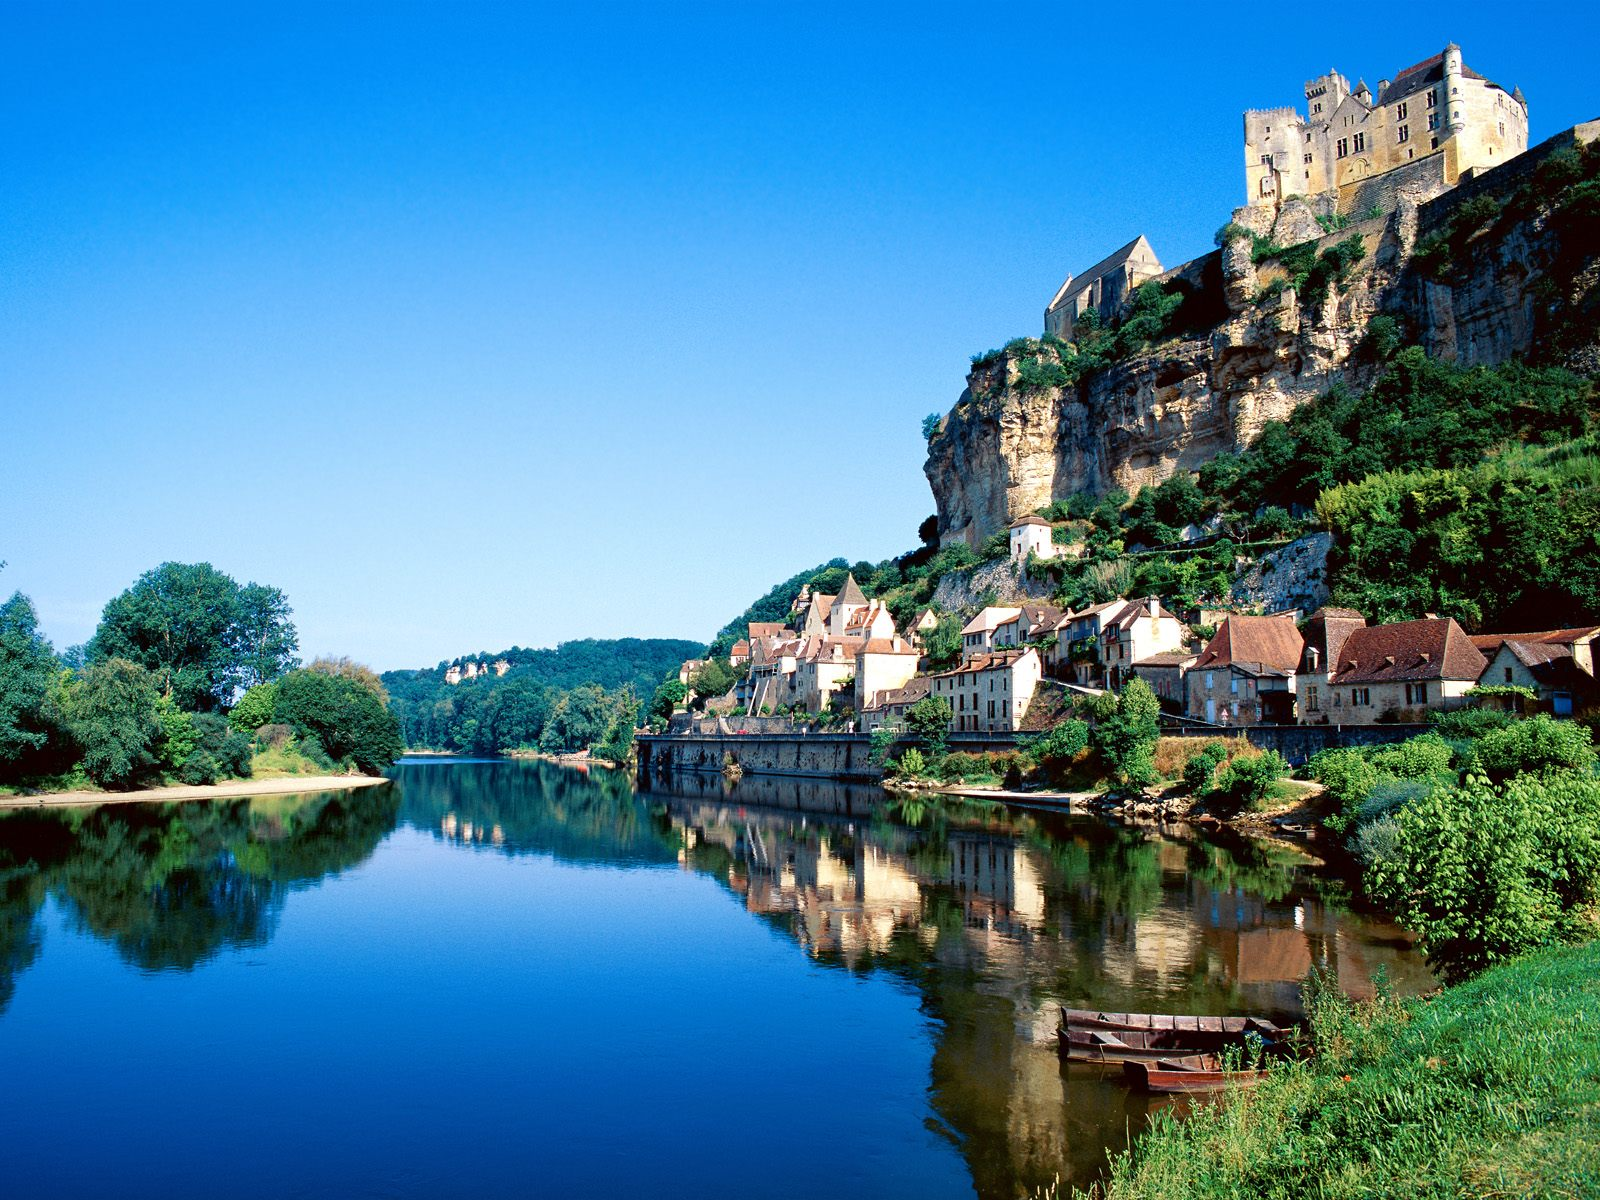 The Dordogne Property Market